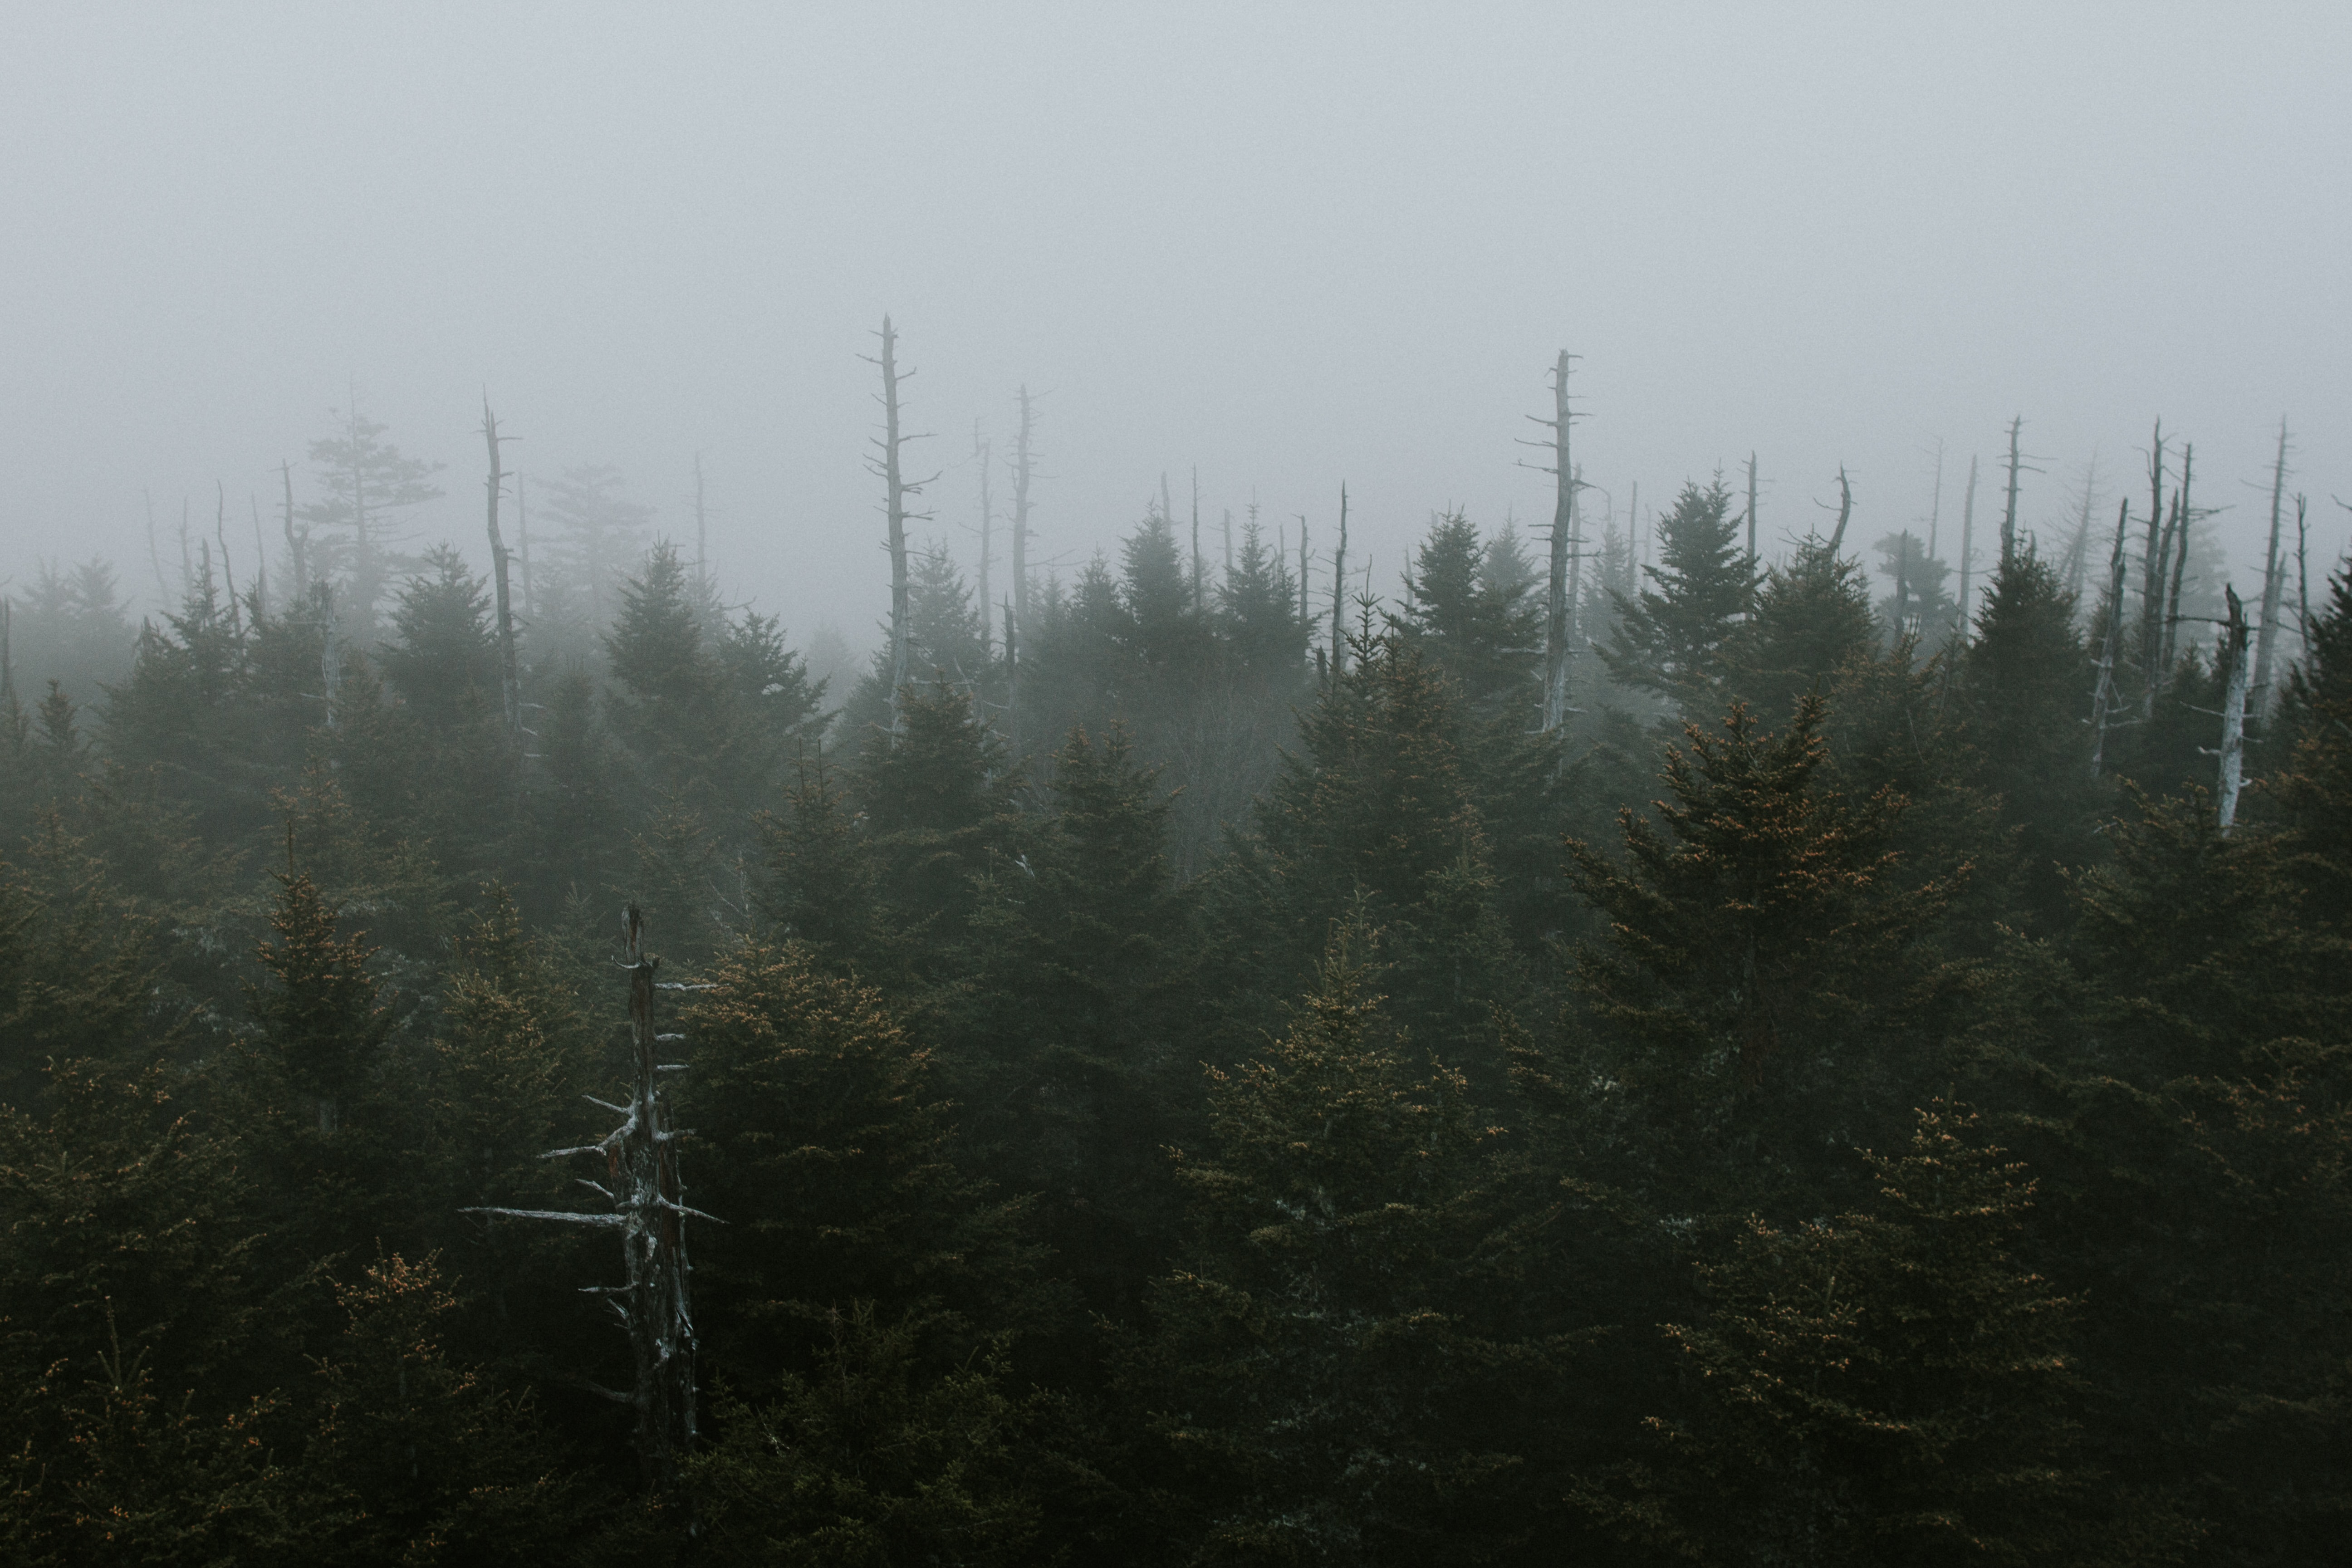 Several dead trees jutting out from an evergreen forest under a pale sky